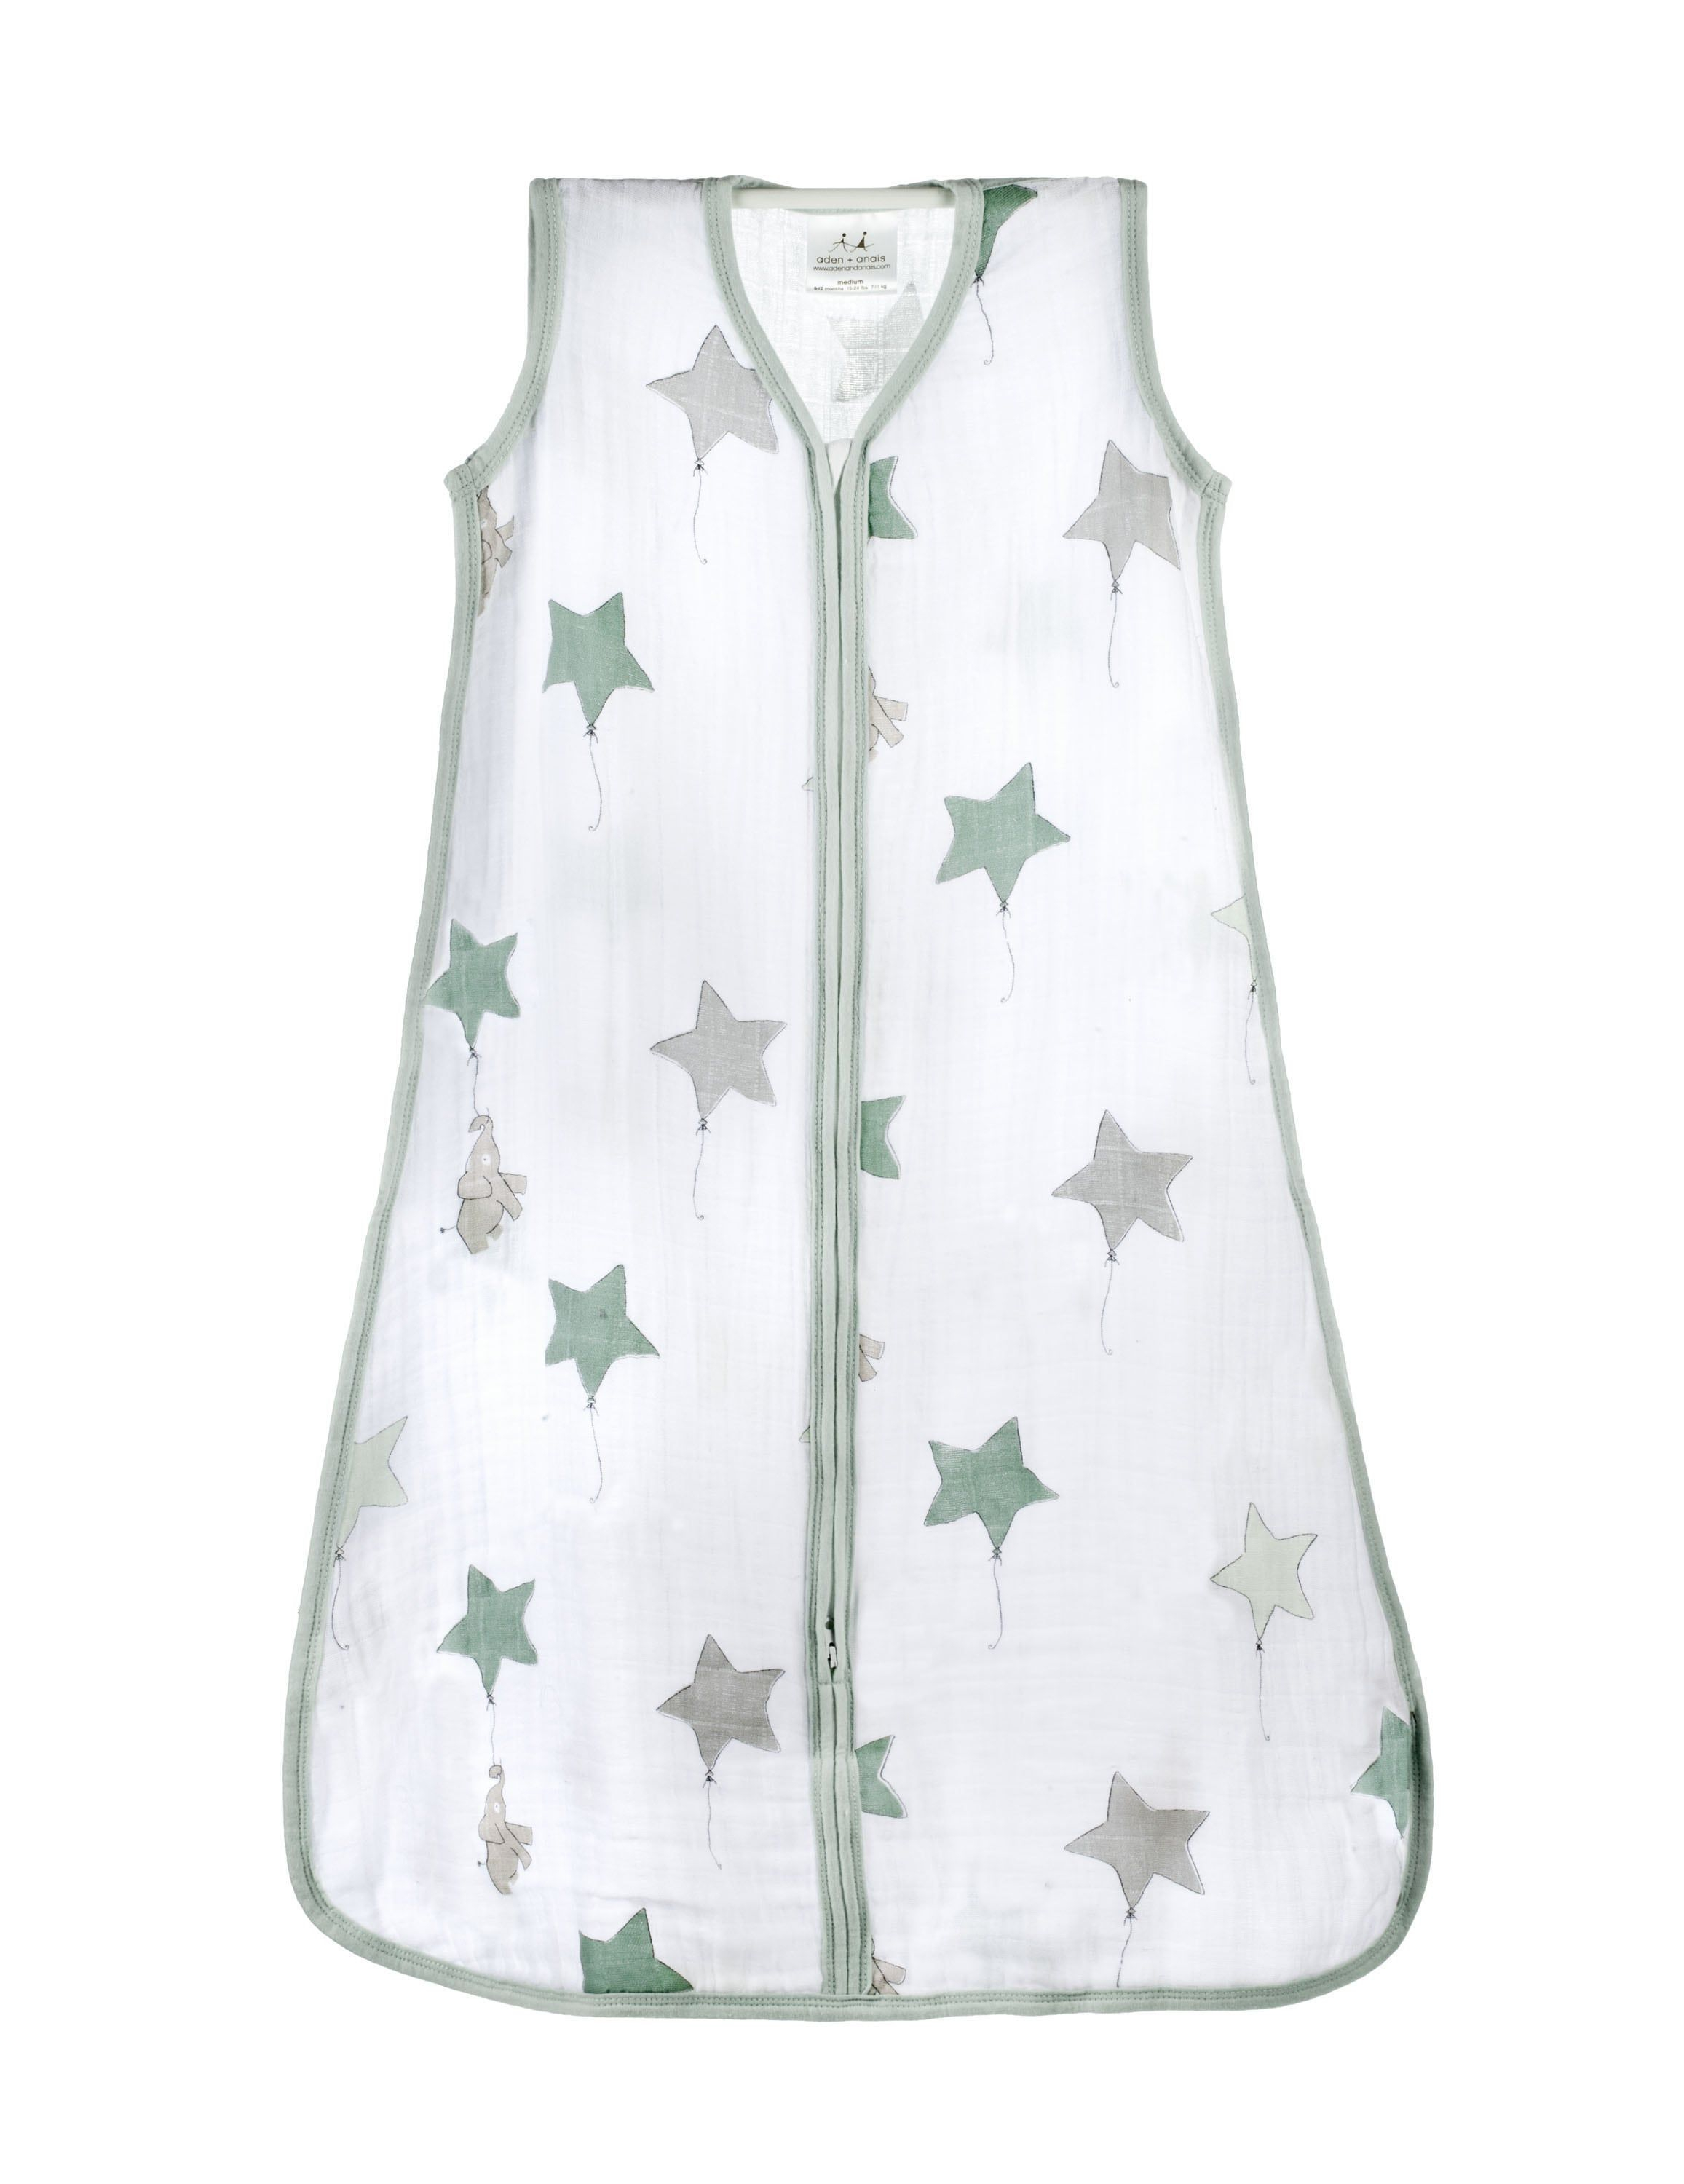 Up up star saco